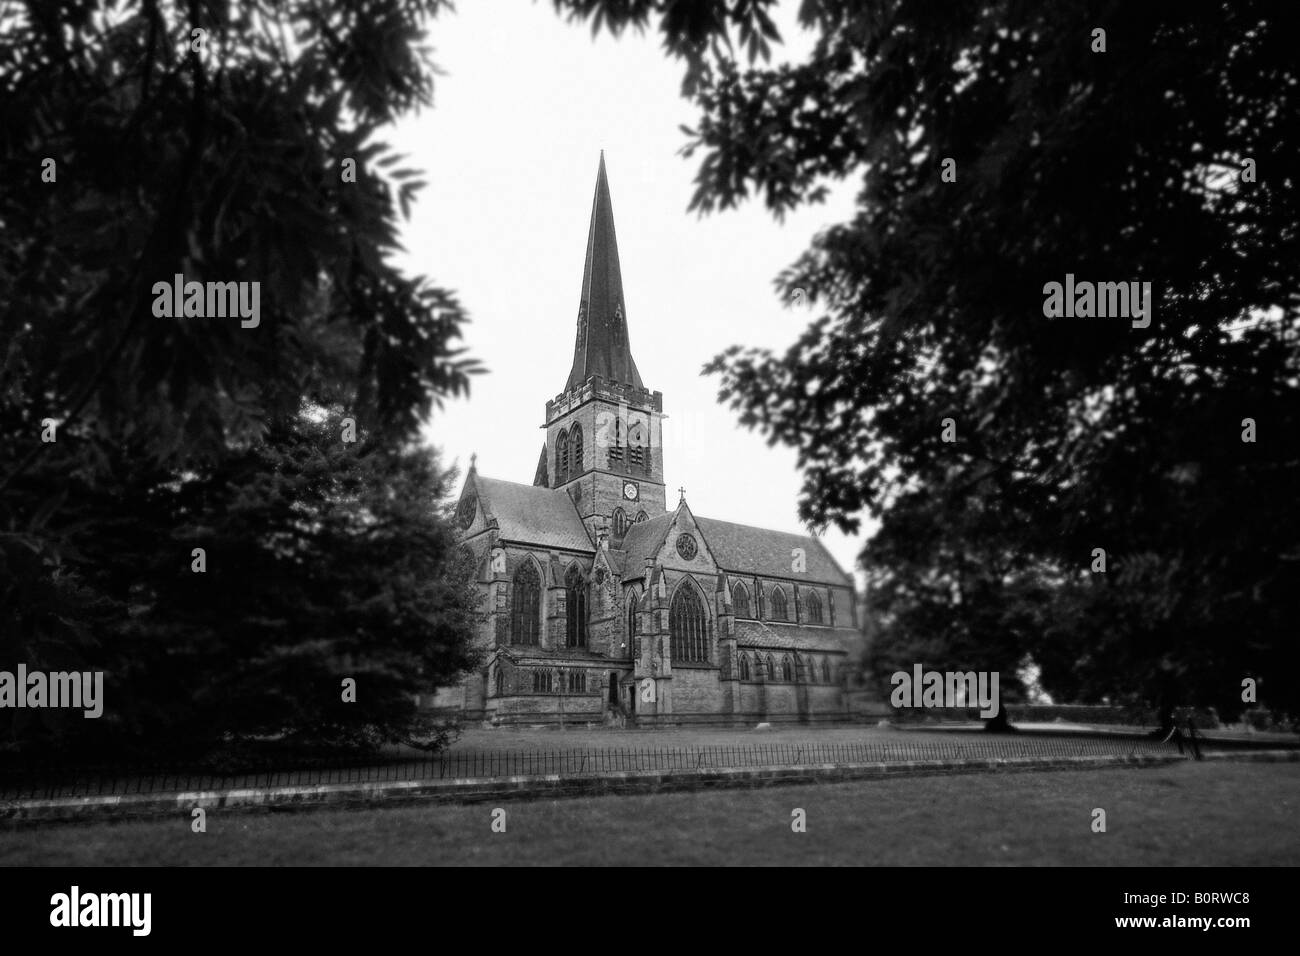 The Holy Trinity Church, Wentworth, Rotherham. - Stock Image